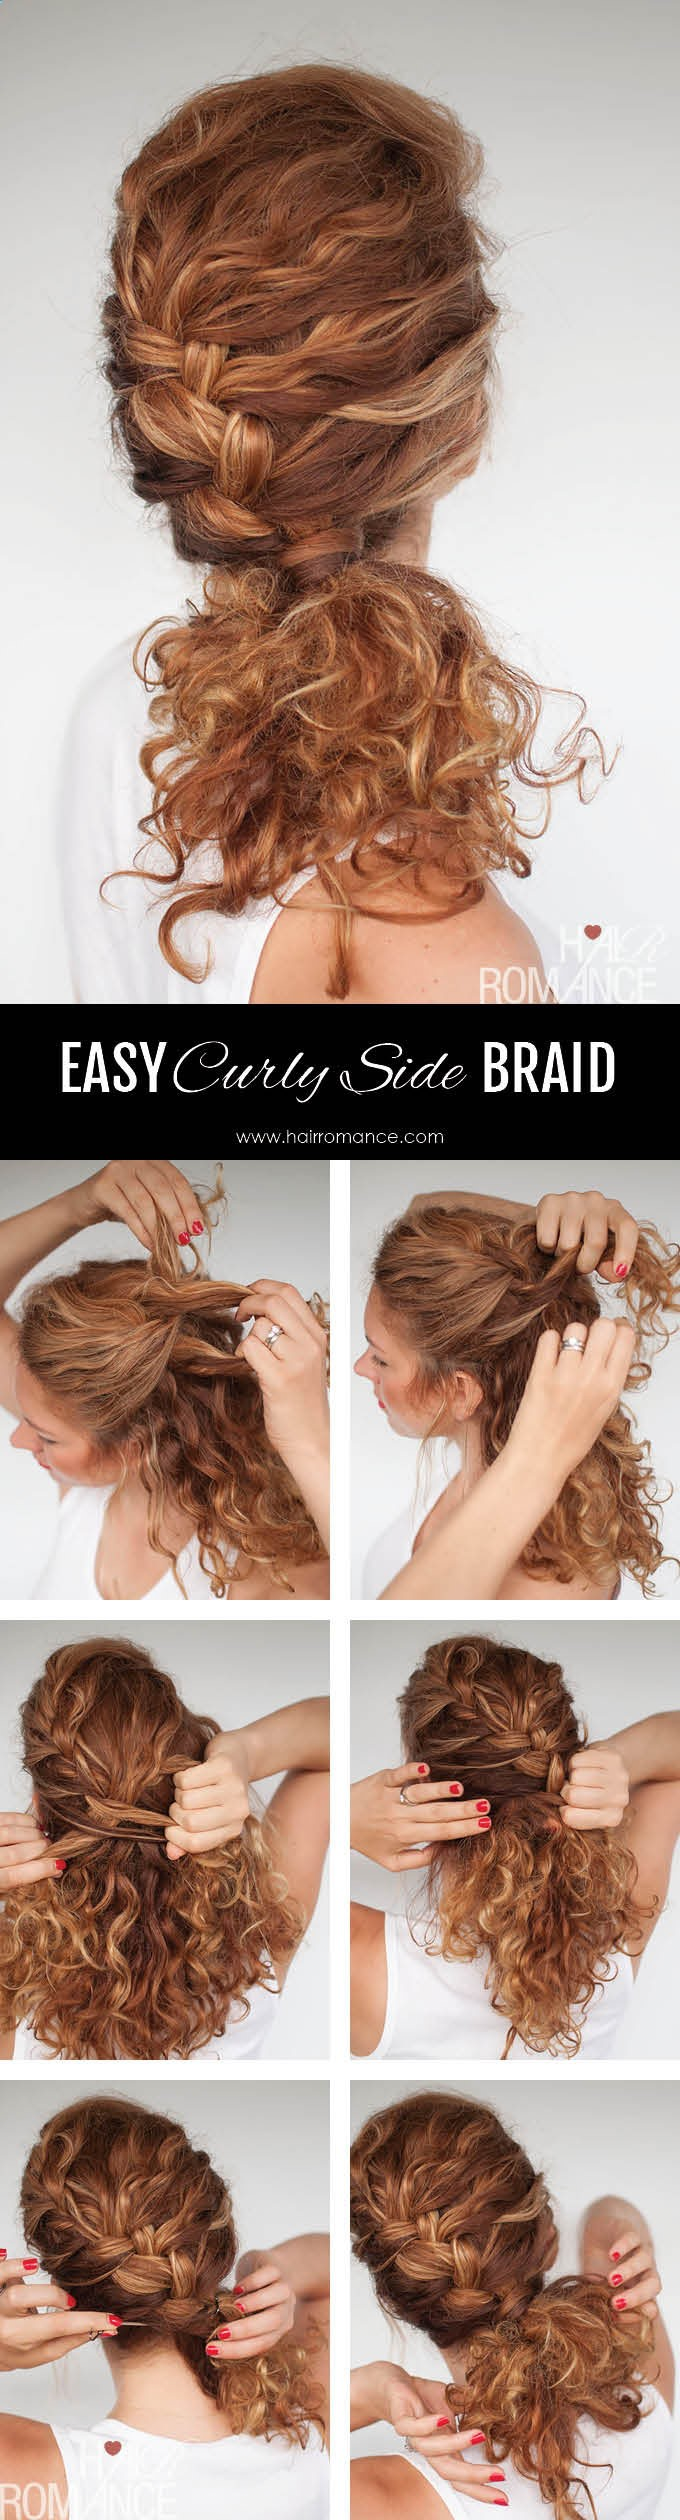 There Is A Common Belief That Women With Curly Hair Are Facing Difficulties In Controlling Their Curly Hair Styles Naturally Curly Hair Styles Curly Side Braid